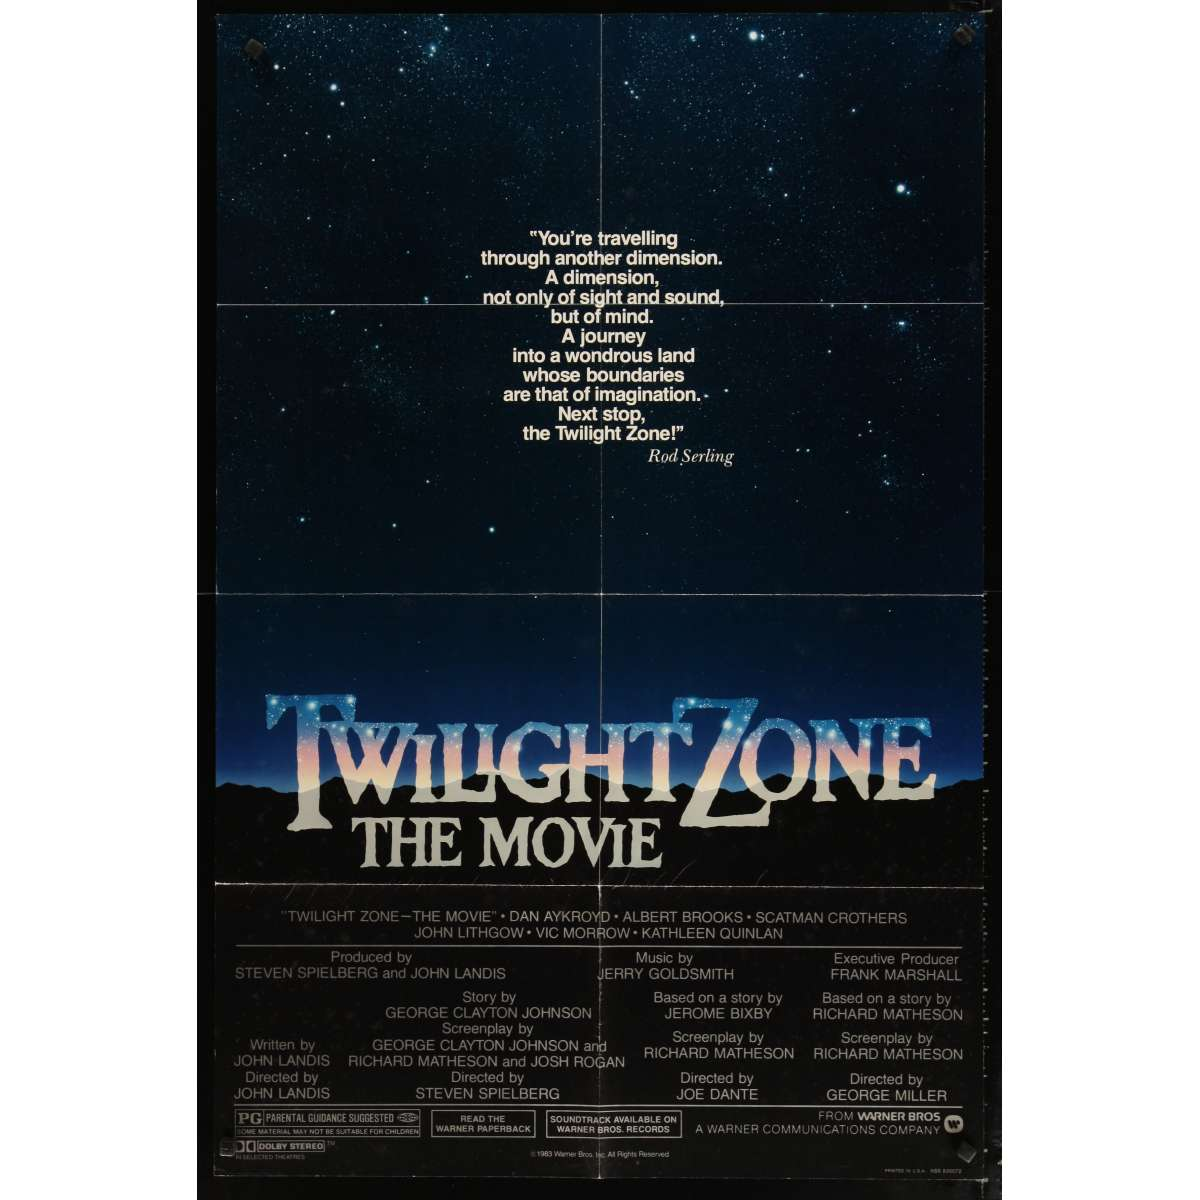 Movie poster size dimensions